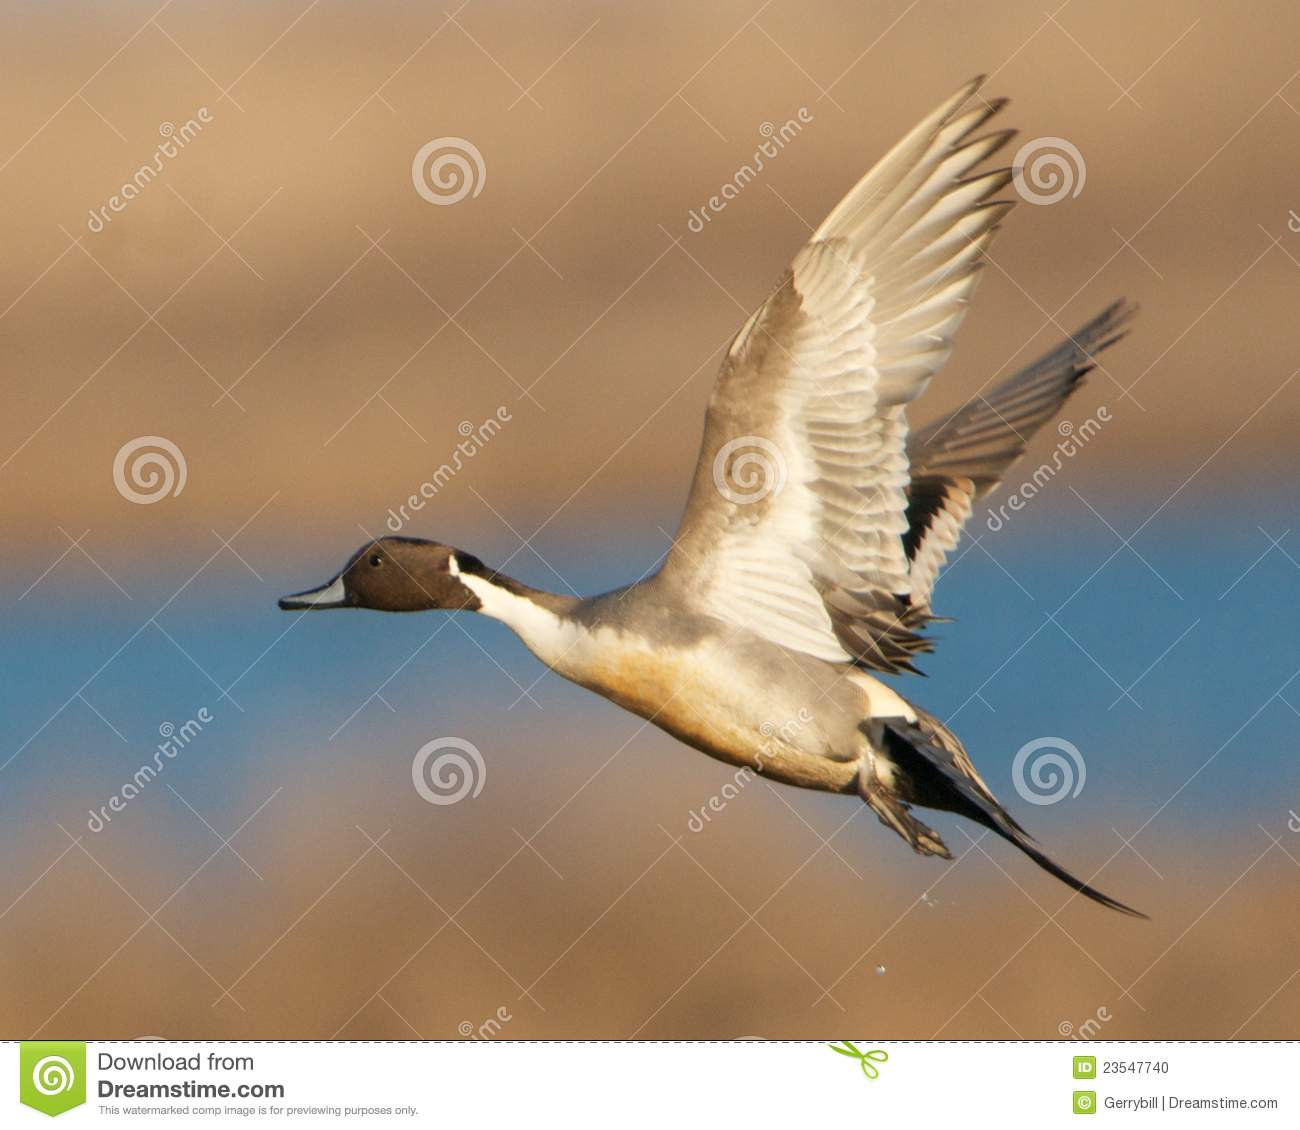 Pintail Duck In Flight Stock Photo - Image: 23547740